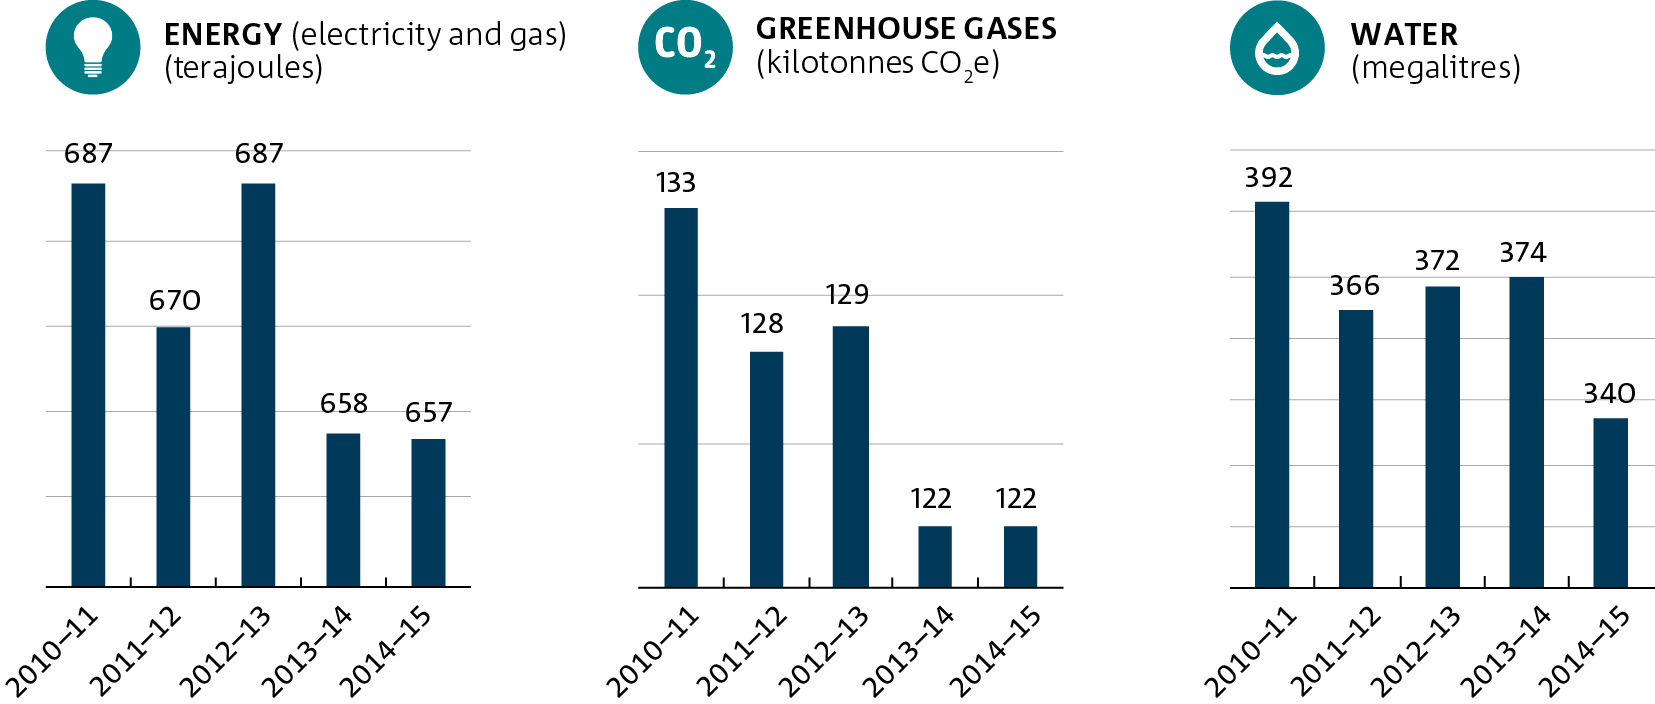 Three bar graphs depicting (left to right) CSIRO's energy emissions, greenhouse gas emissions and water consumption.